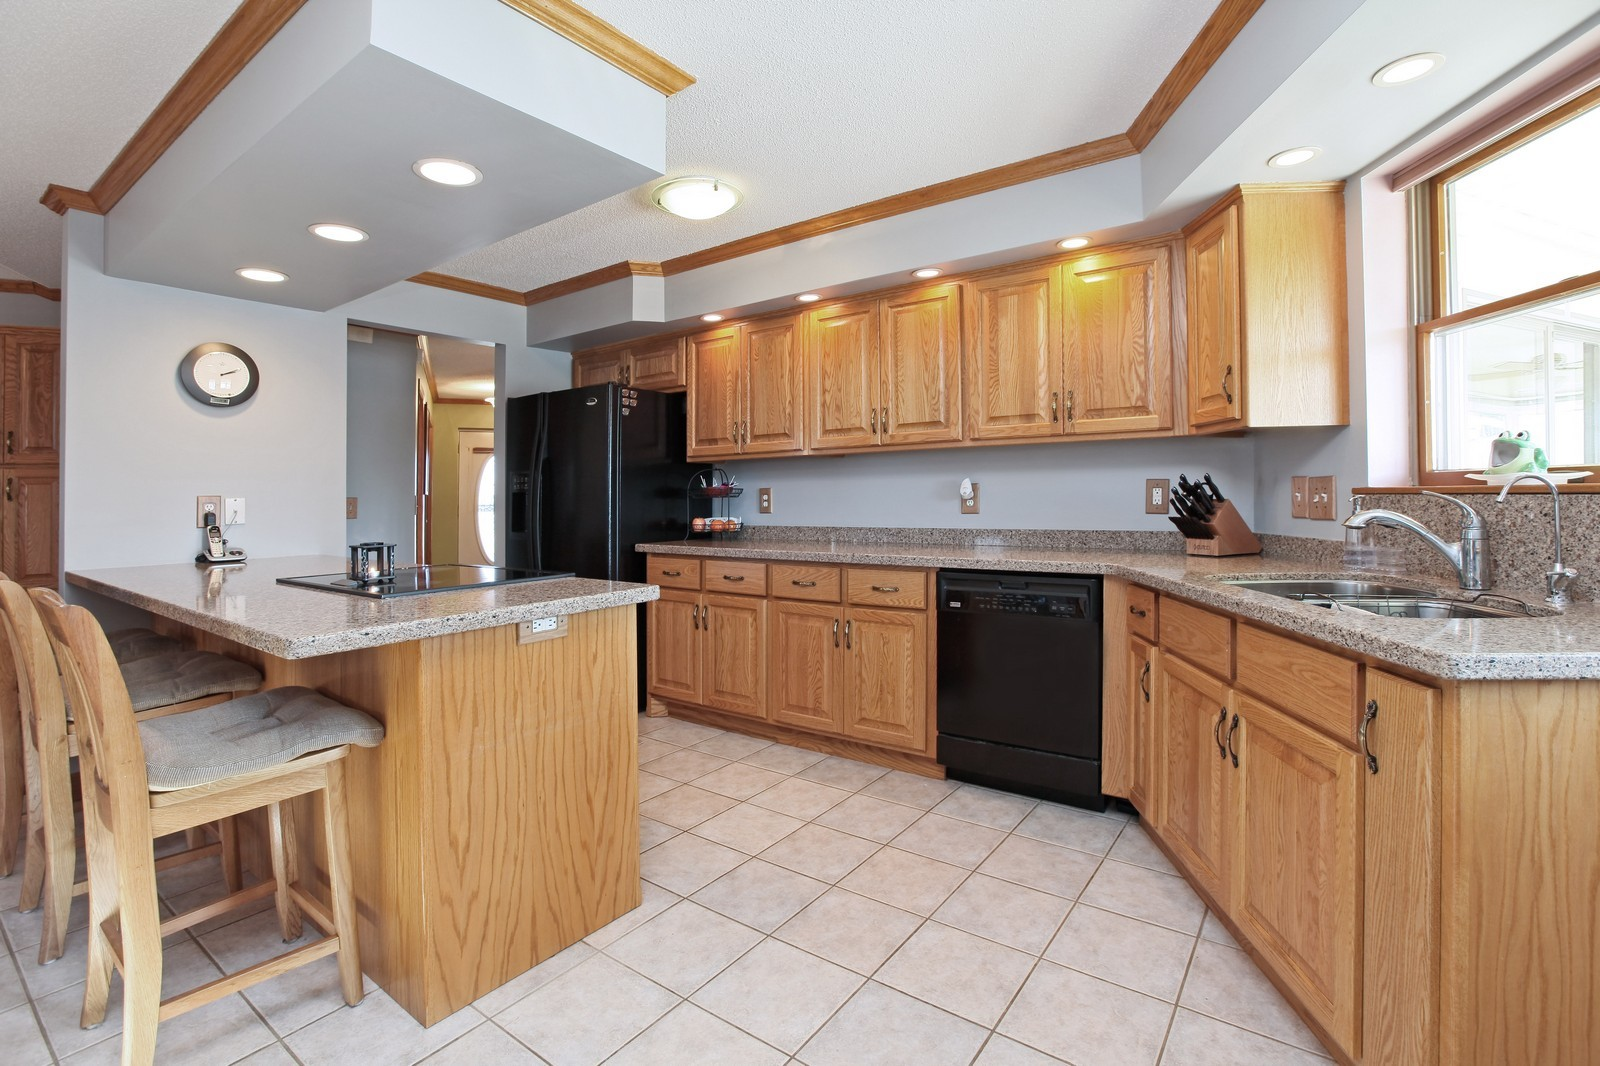 Real Estate Photography - 8095 Trail Haven Rd, Corcoran, MN, 55340 - Kitchen